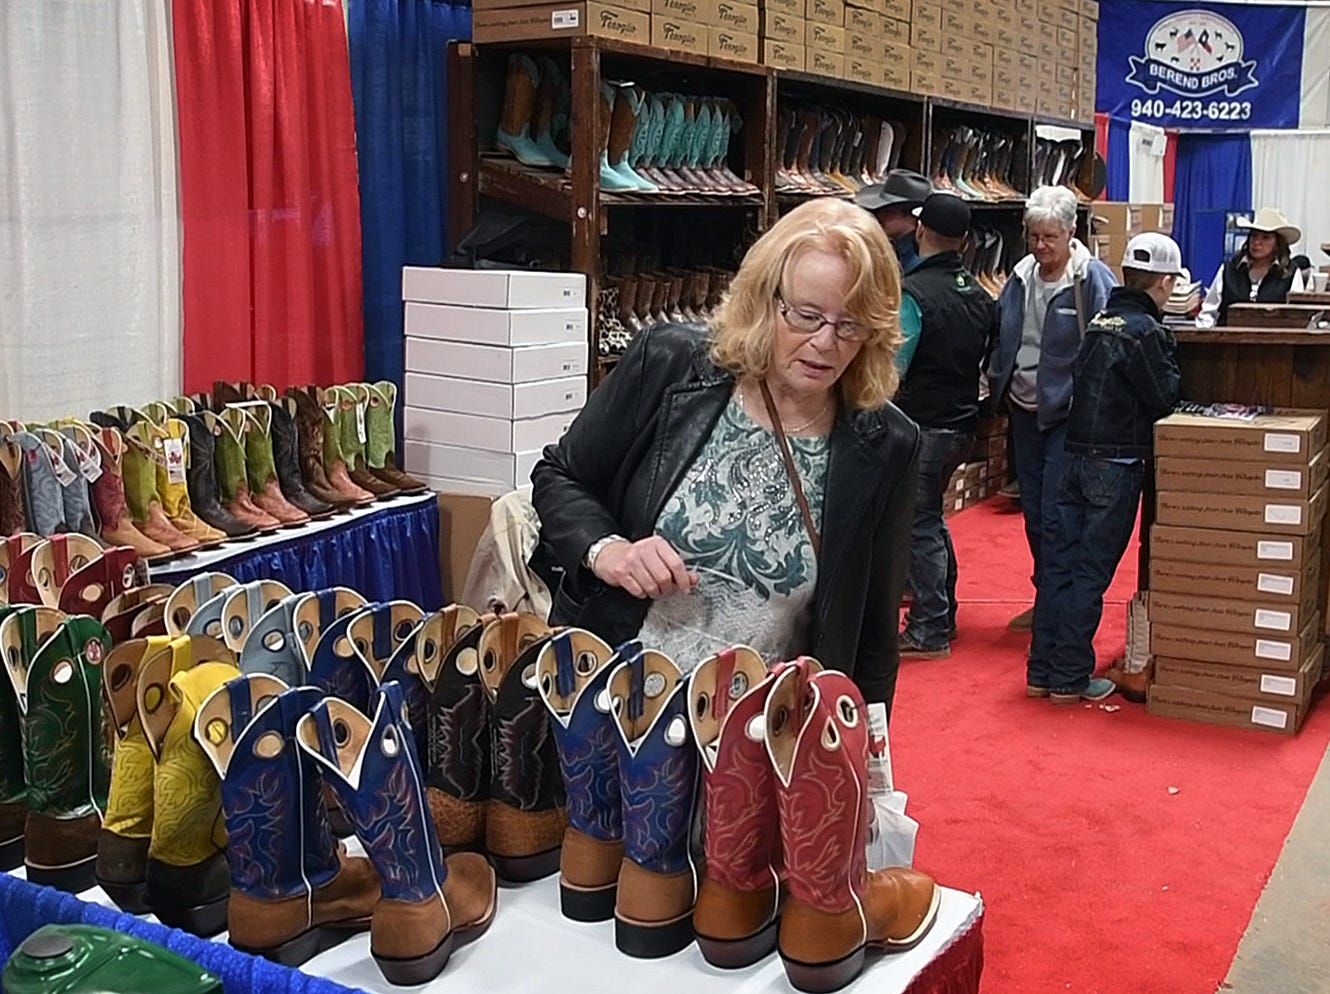 Fenoglio Boots was one about 150 vendors and exhibitors at the 10th Annual Wichita Falls Ranch and Farm Expo at the Bridwell Ag Center Thursday.